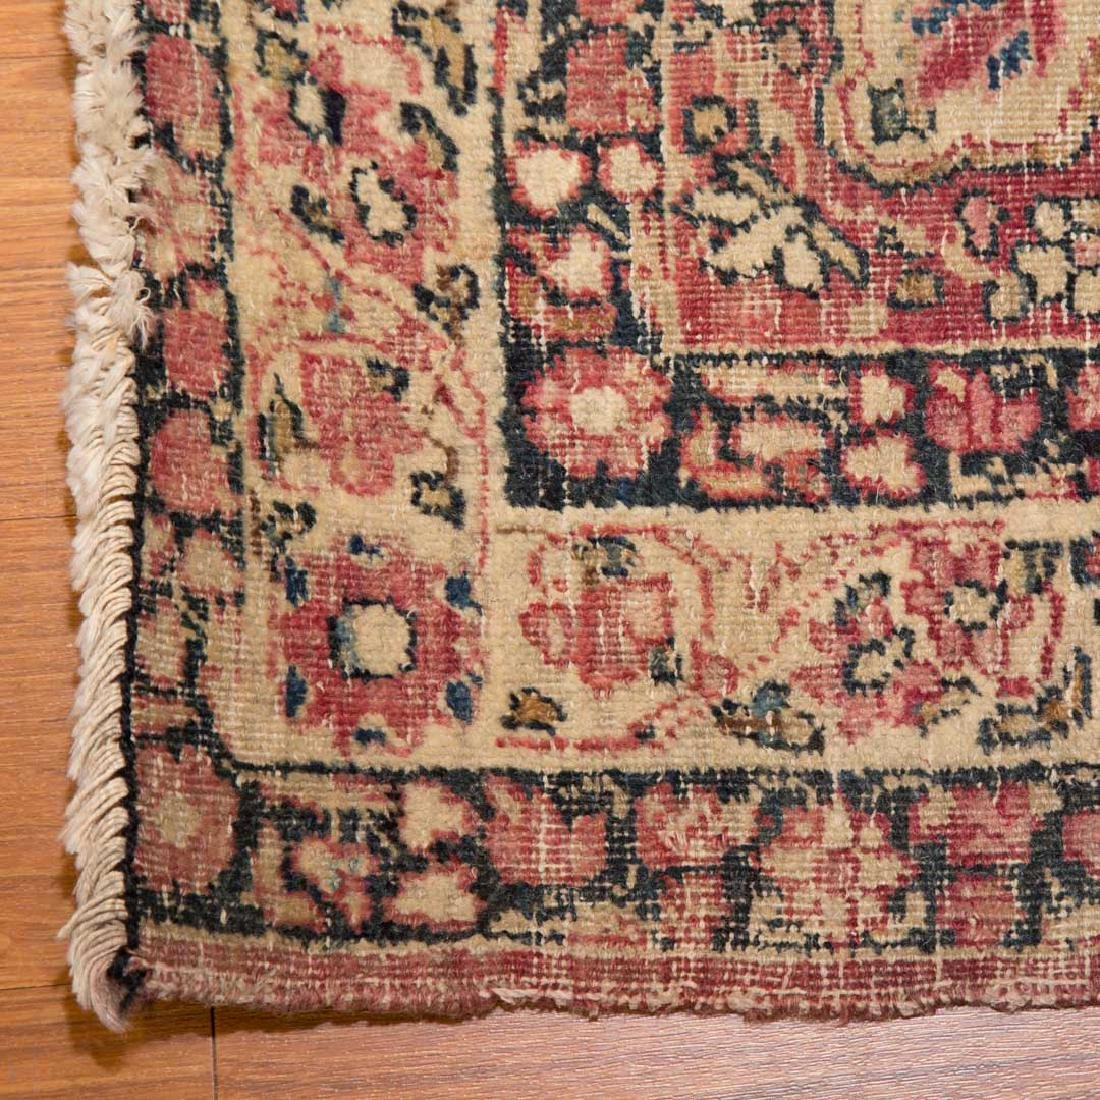 Antique Lavar Kerman rug, approx. 2.11 x 4.5 - 2